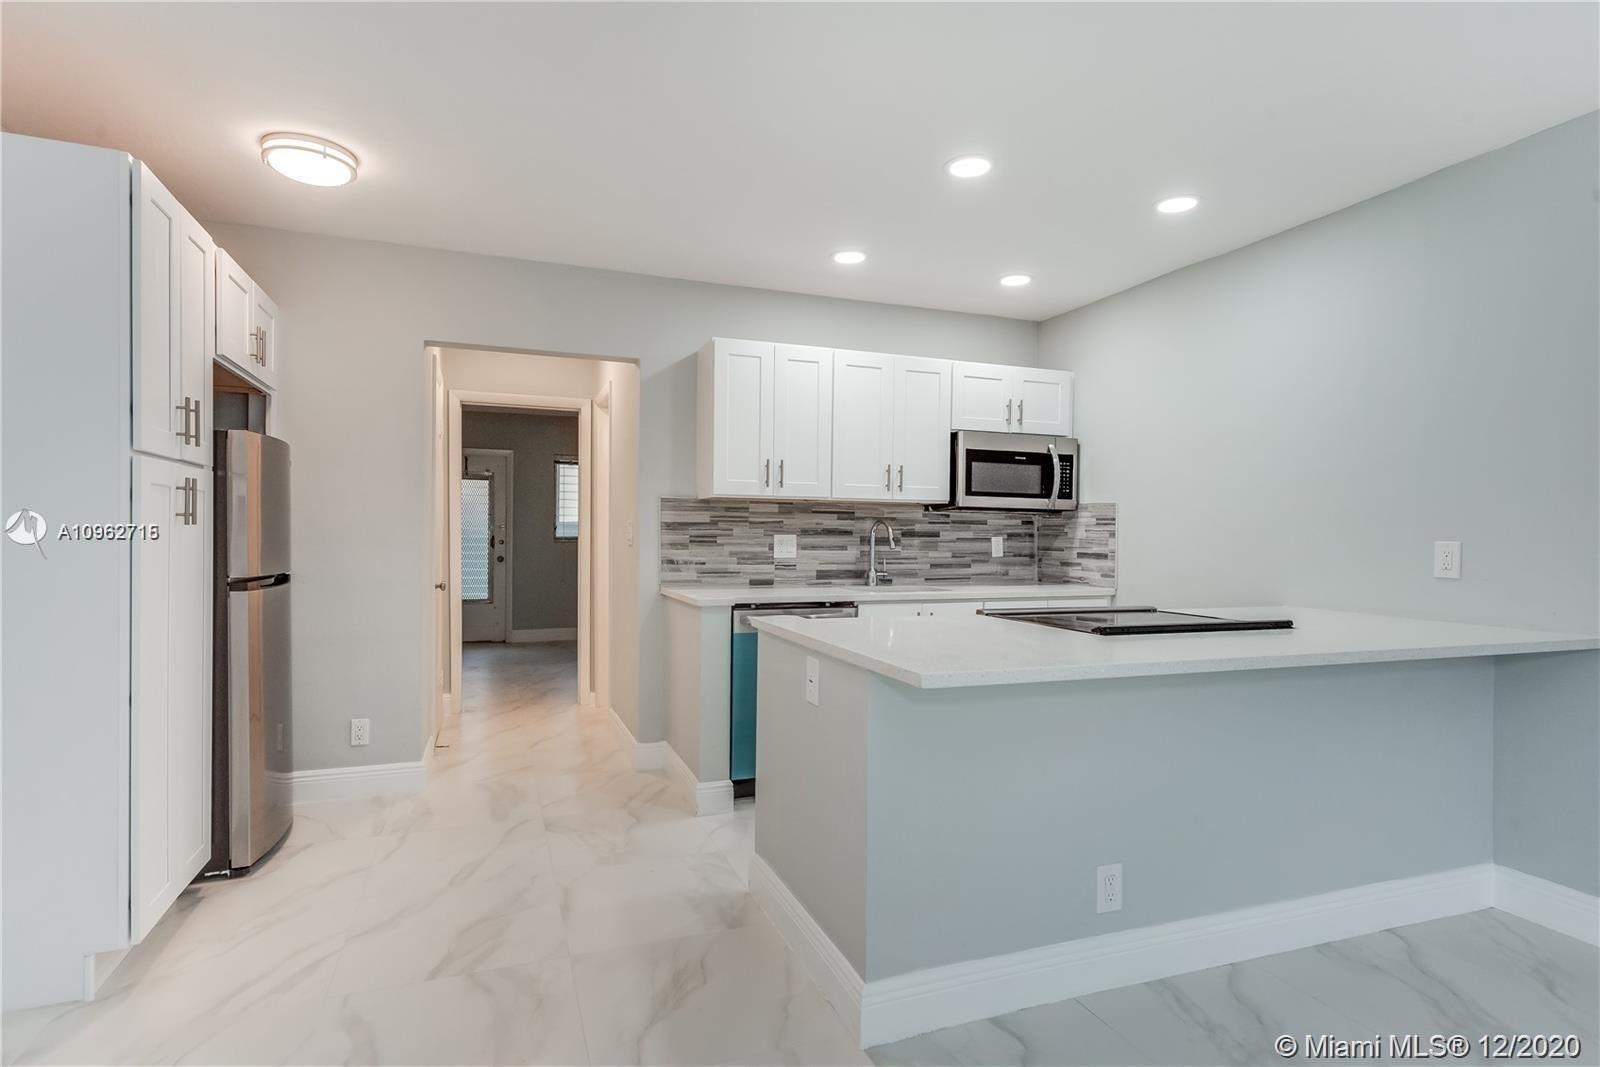 Property à 2020 NE 51st Ct , 109 Knoll Ridge, Fort Lauderdale, FL 33308